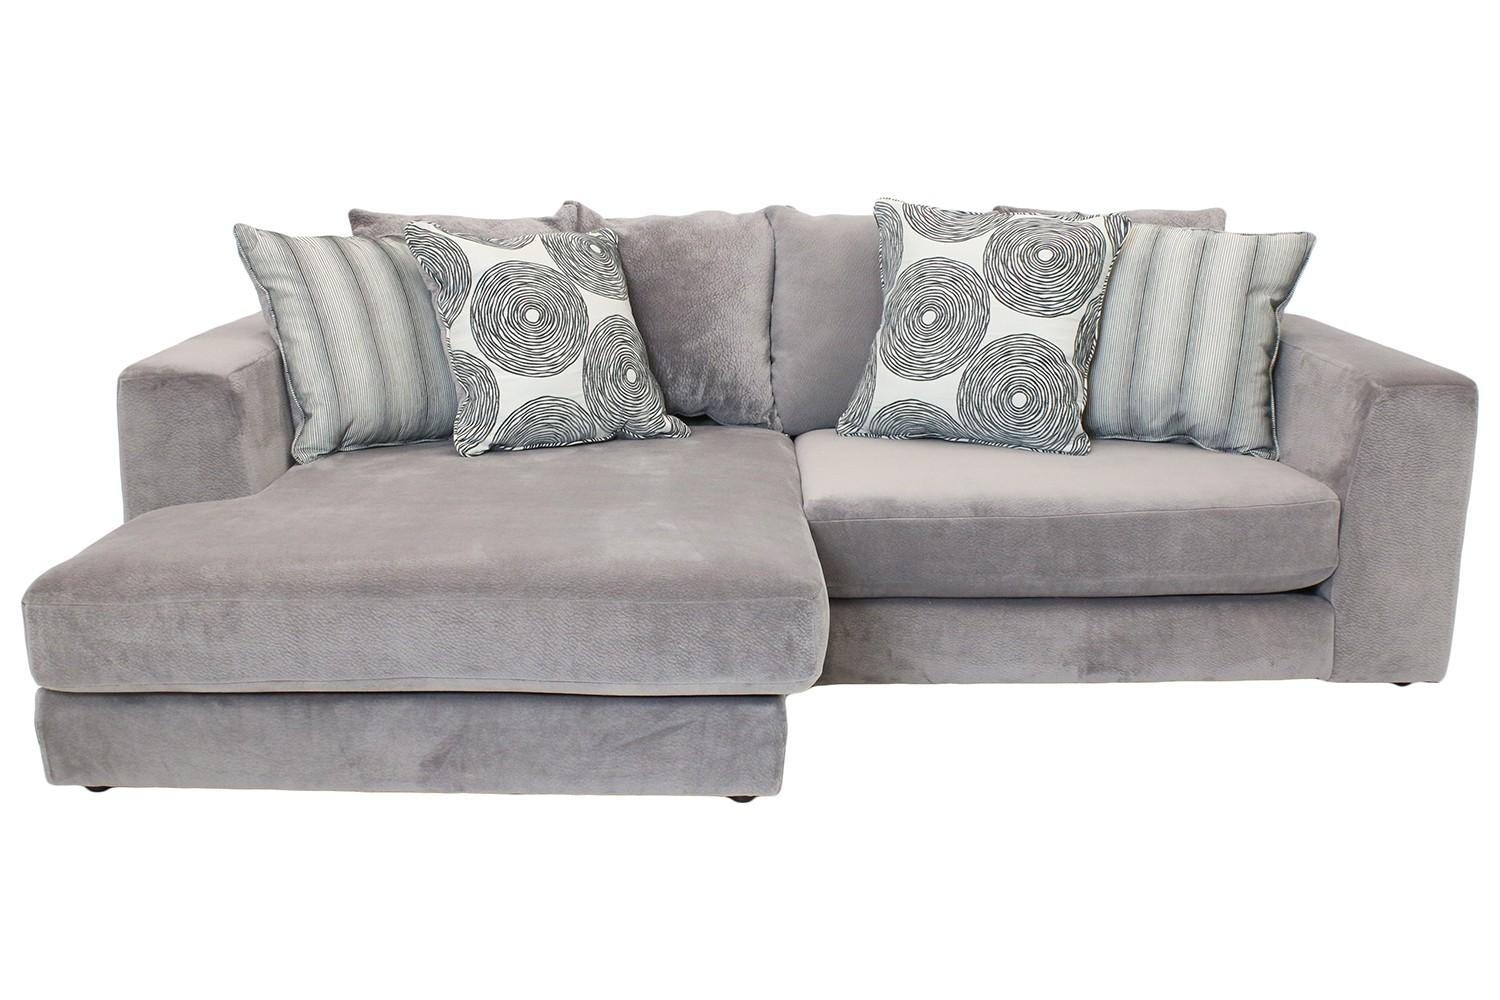 Cloud Graphite Sectional | Mor Furniture For Less With Regard To Cloud Sectional Sofas (View 2 of 20)